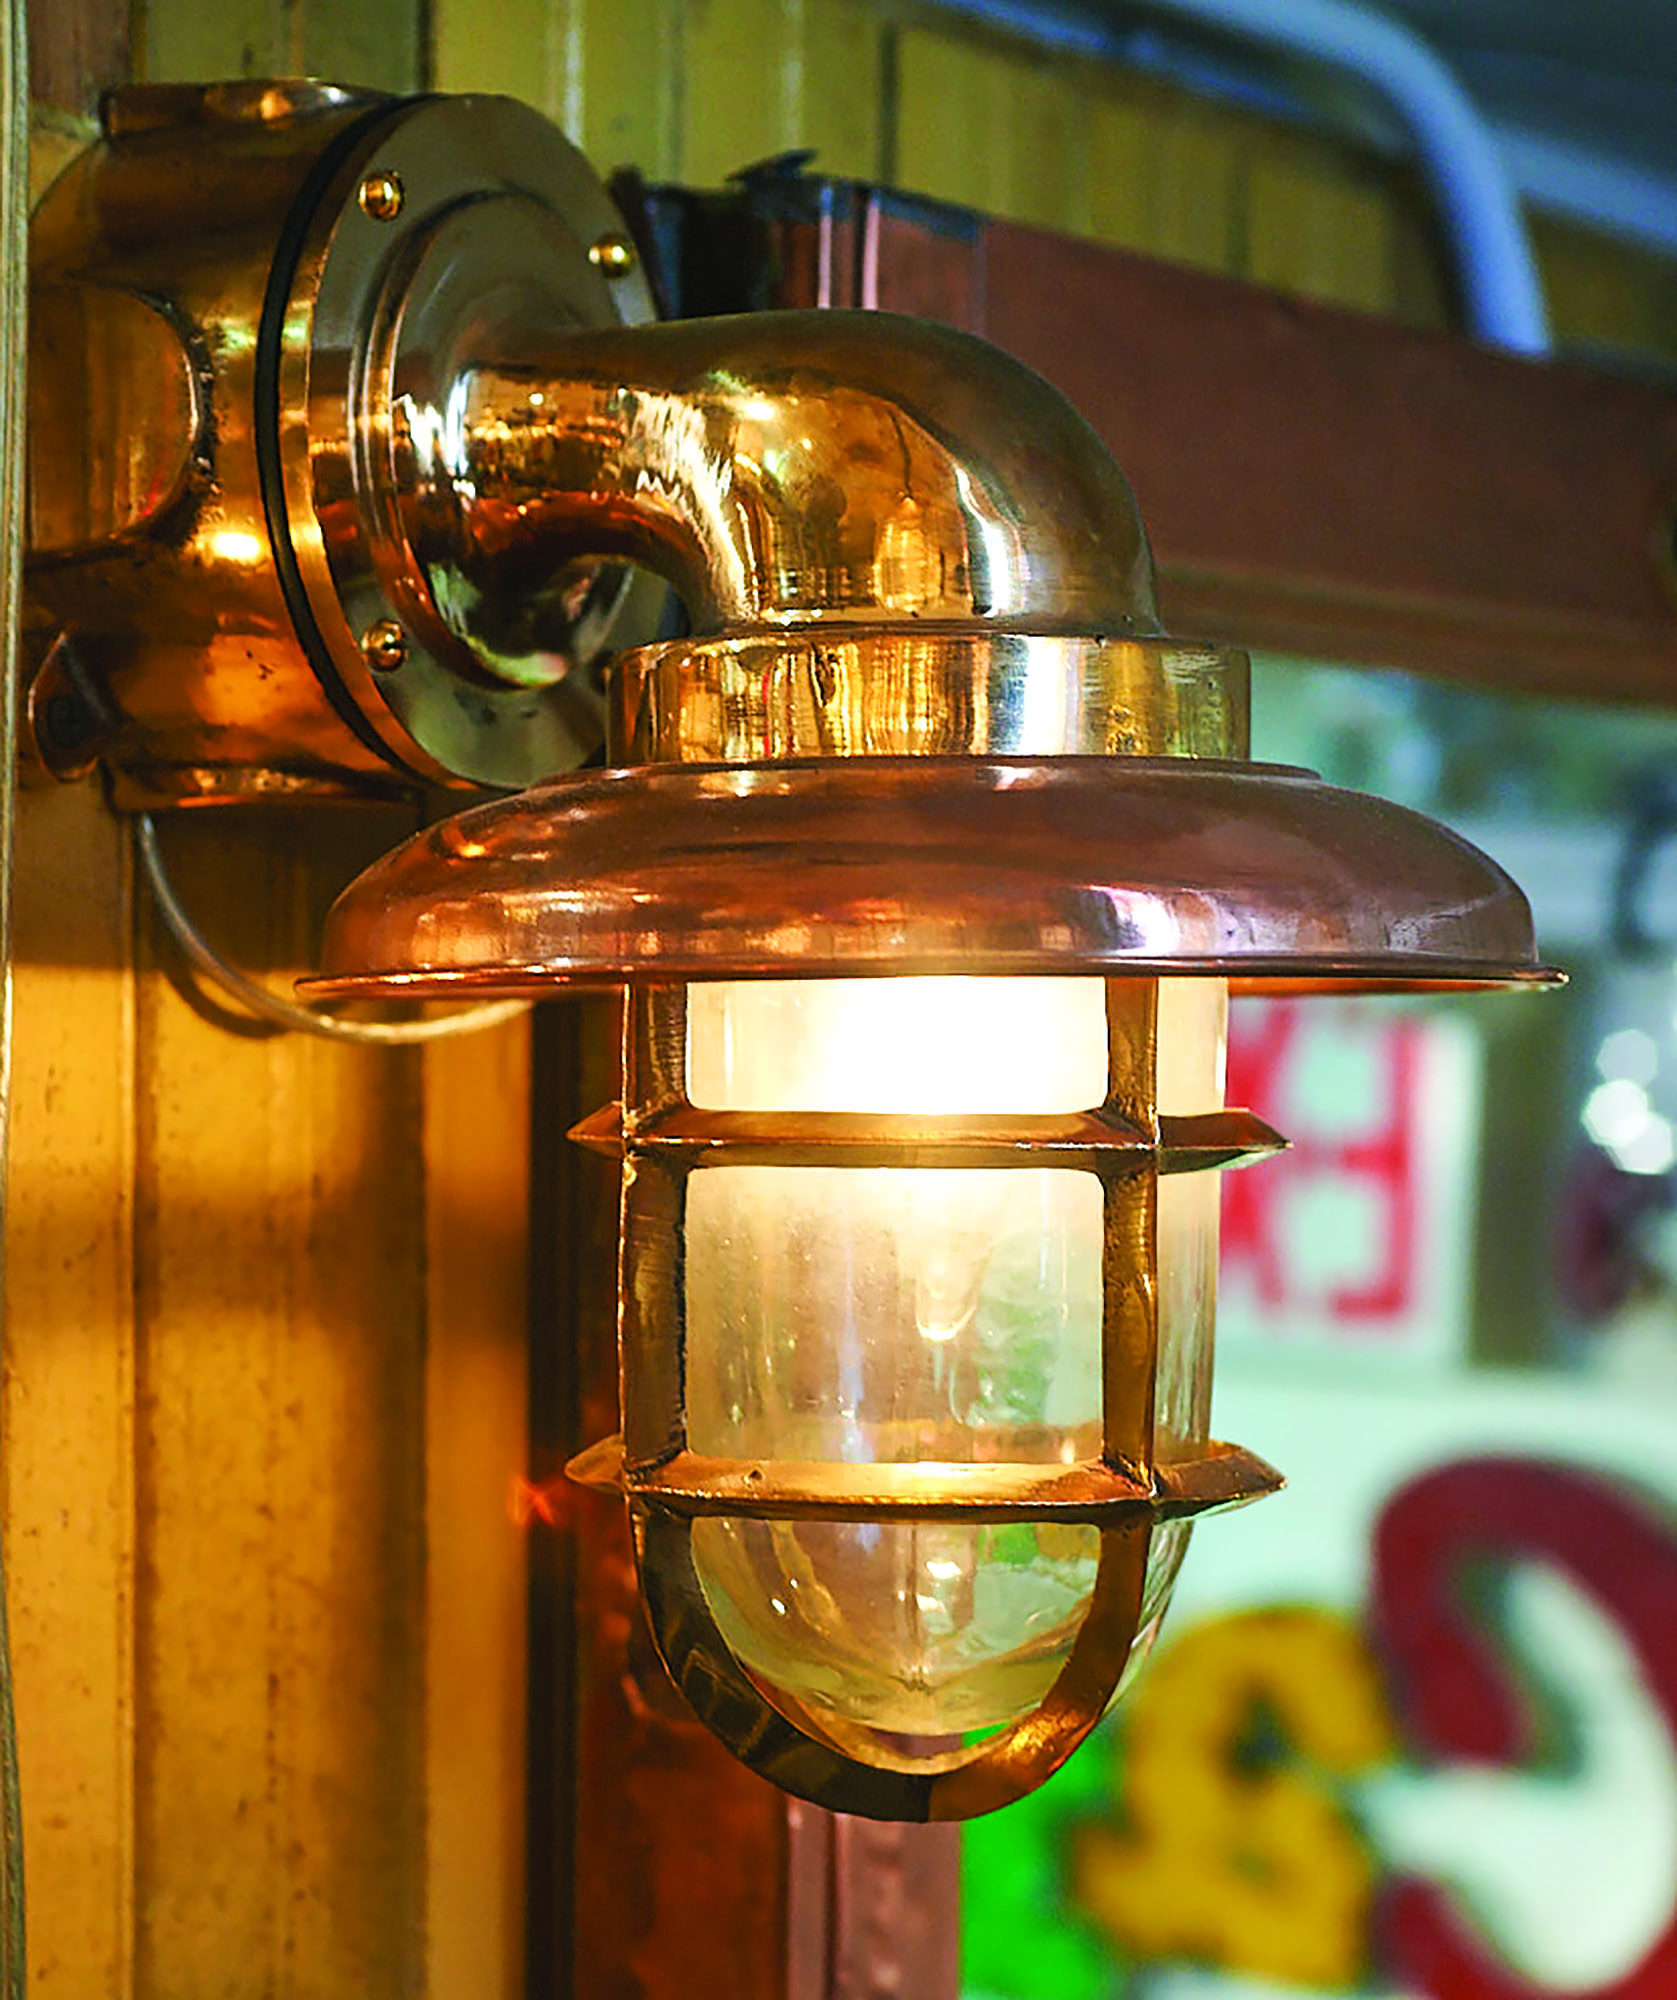 Old ship lights in brass and copper may be stripped and polished, or their patina left intact. They convert well to durable home lighting fixtures that come with an interesting history.